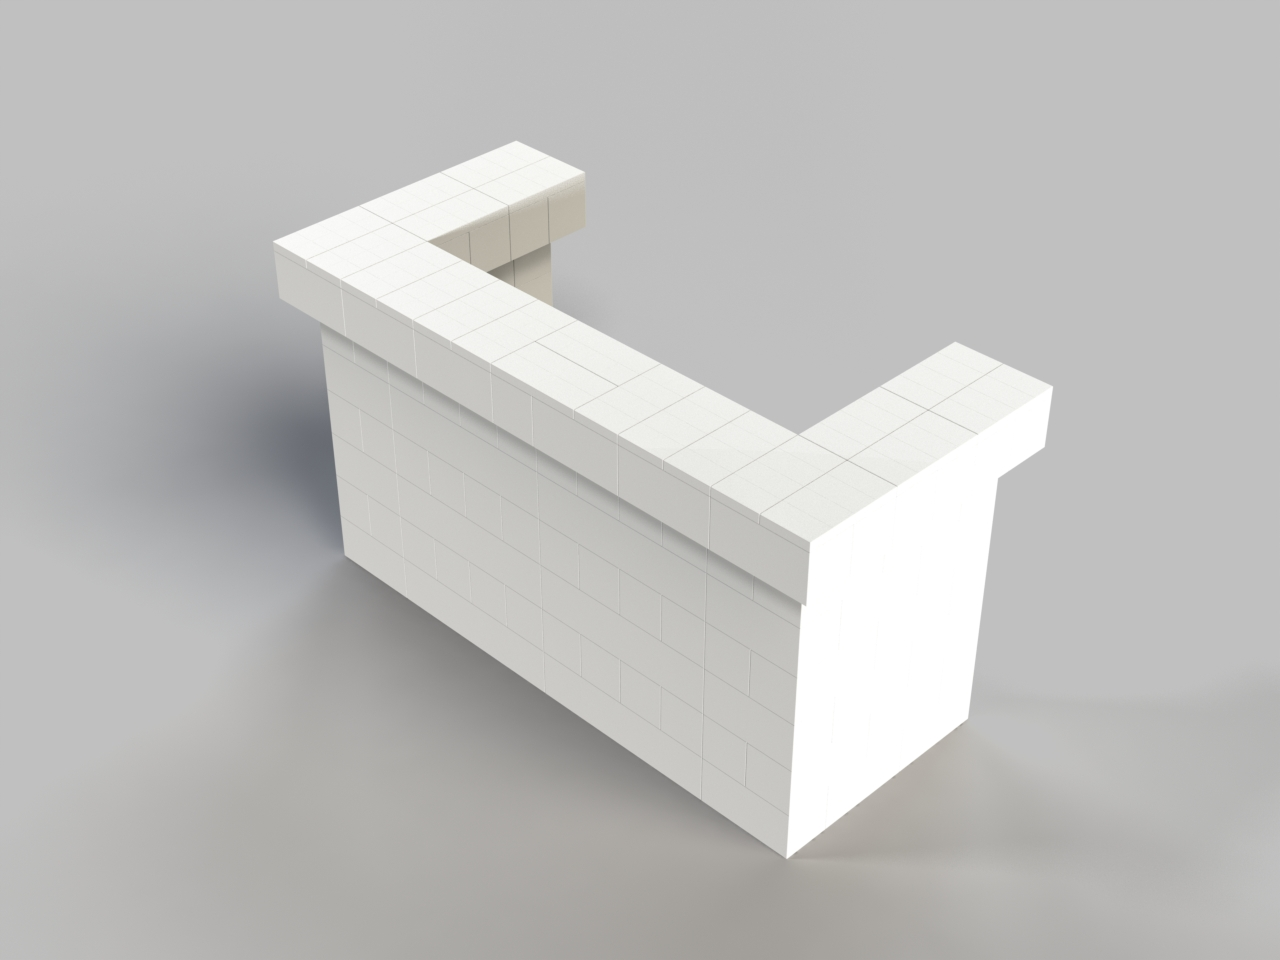 6ft, 1 Layer, All Sides Cantilevered Bar